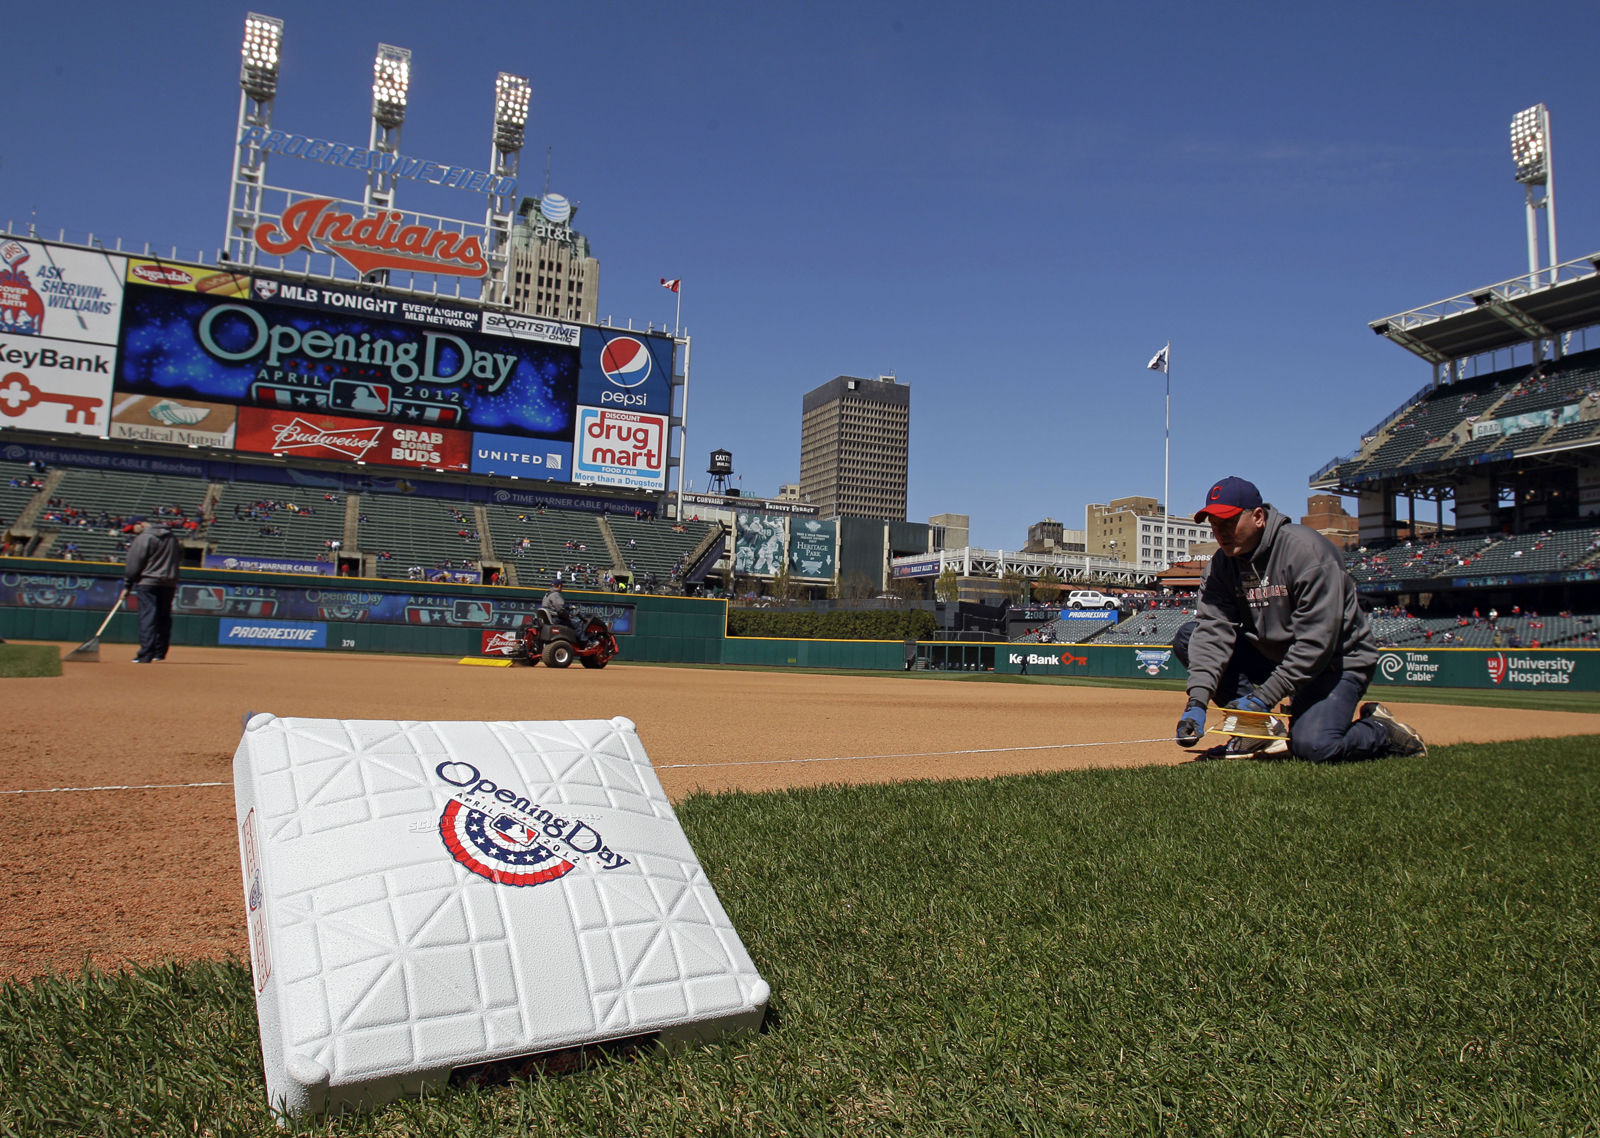 Progressive Field, home of the Cleveland Indians, is No. 22 on the list. It costs $62 on average to see a game. File. (AP Photo/Mark Duncan)